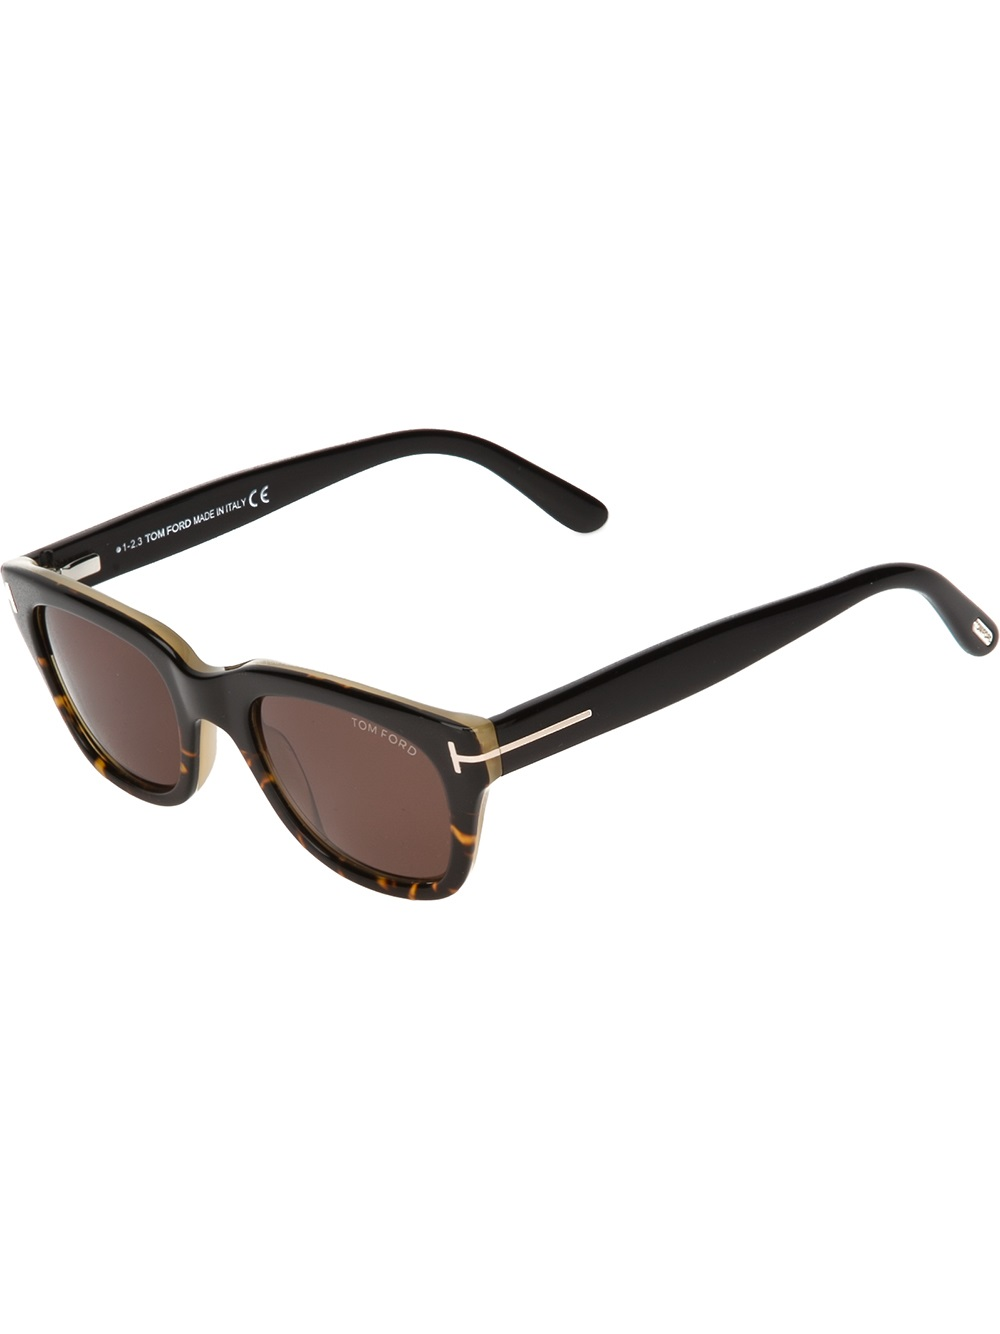 black glass tortoiseshell sunglasses from tom ford featuring aviator. Cars Review. Best American Auto & Cars Review